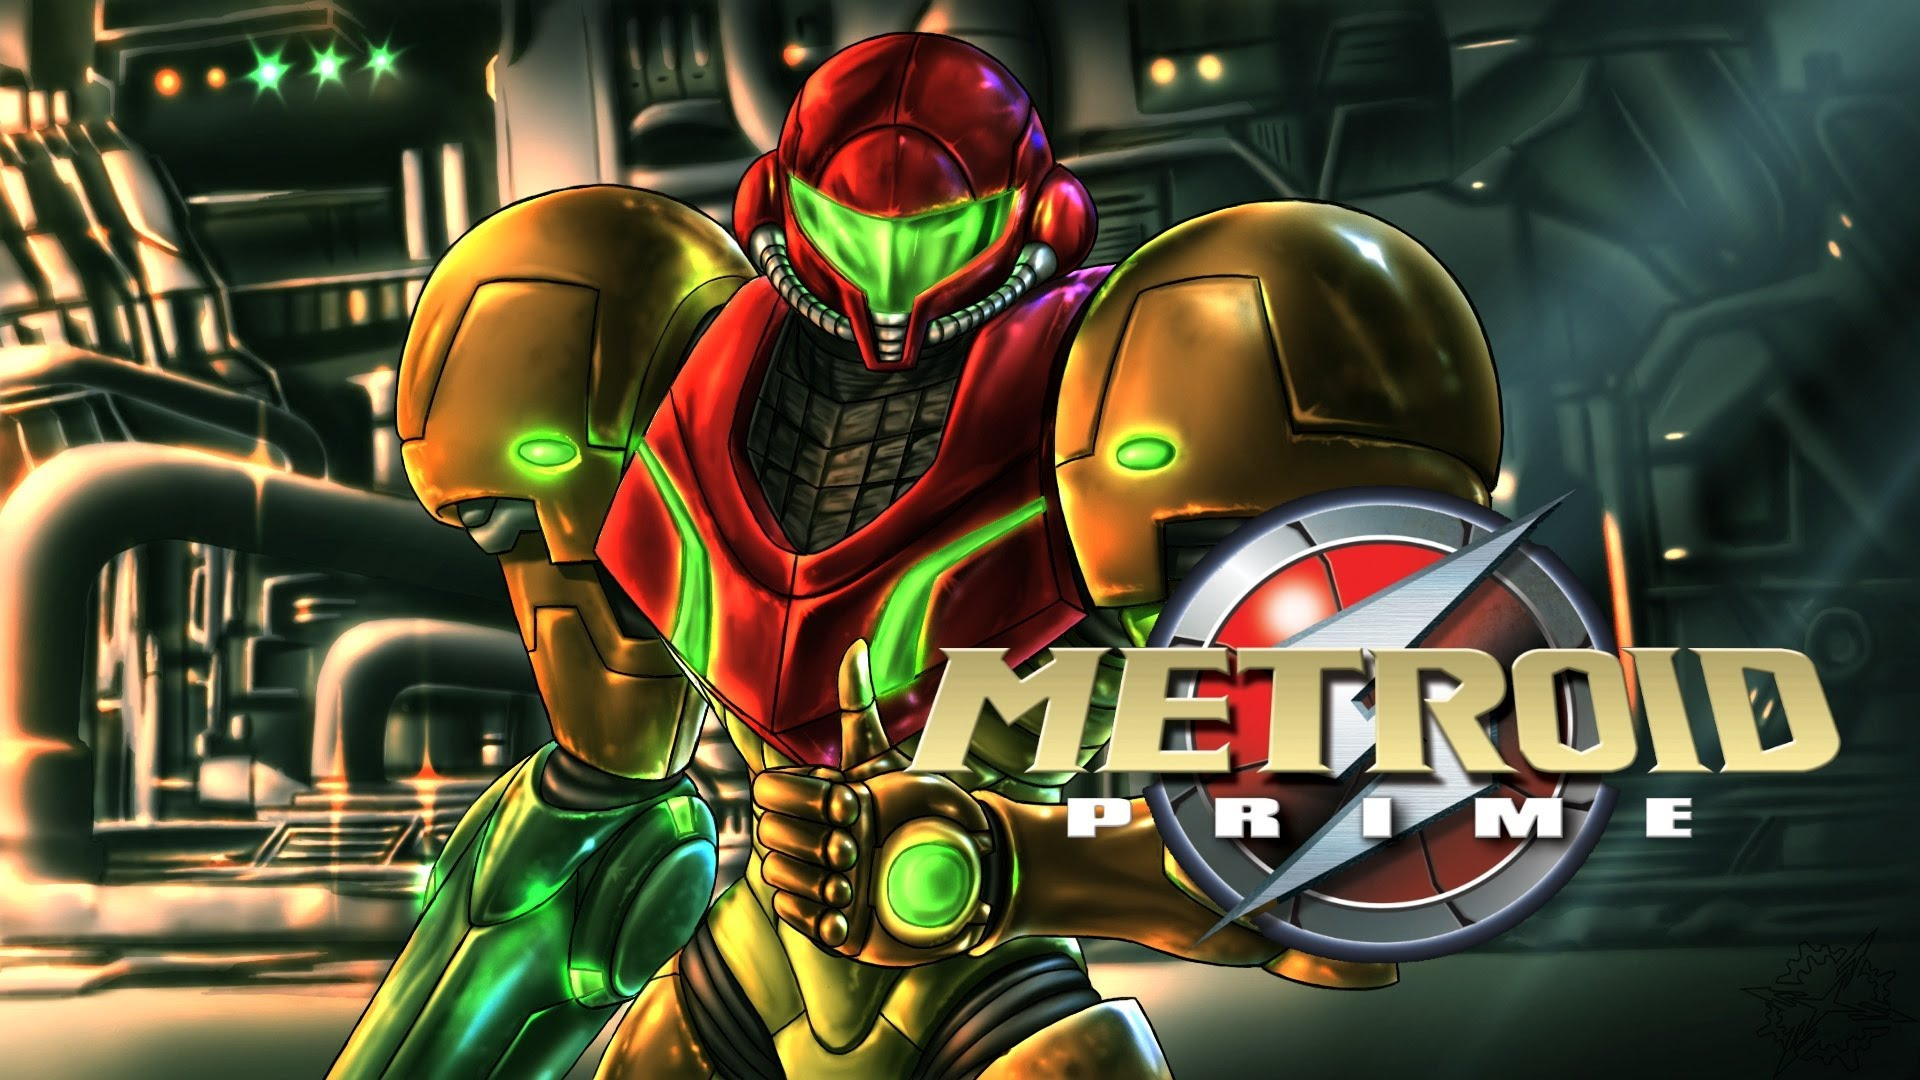 Metroid Prime – Not Likely Till Next Nintendo Console